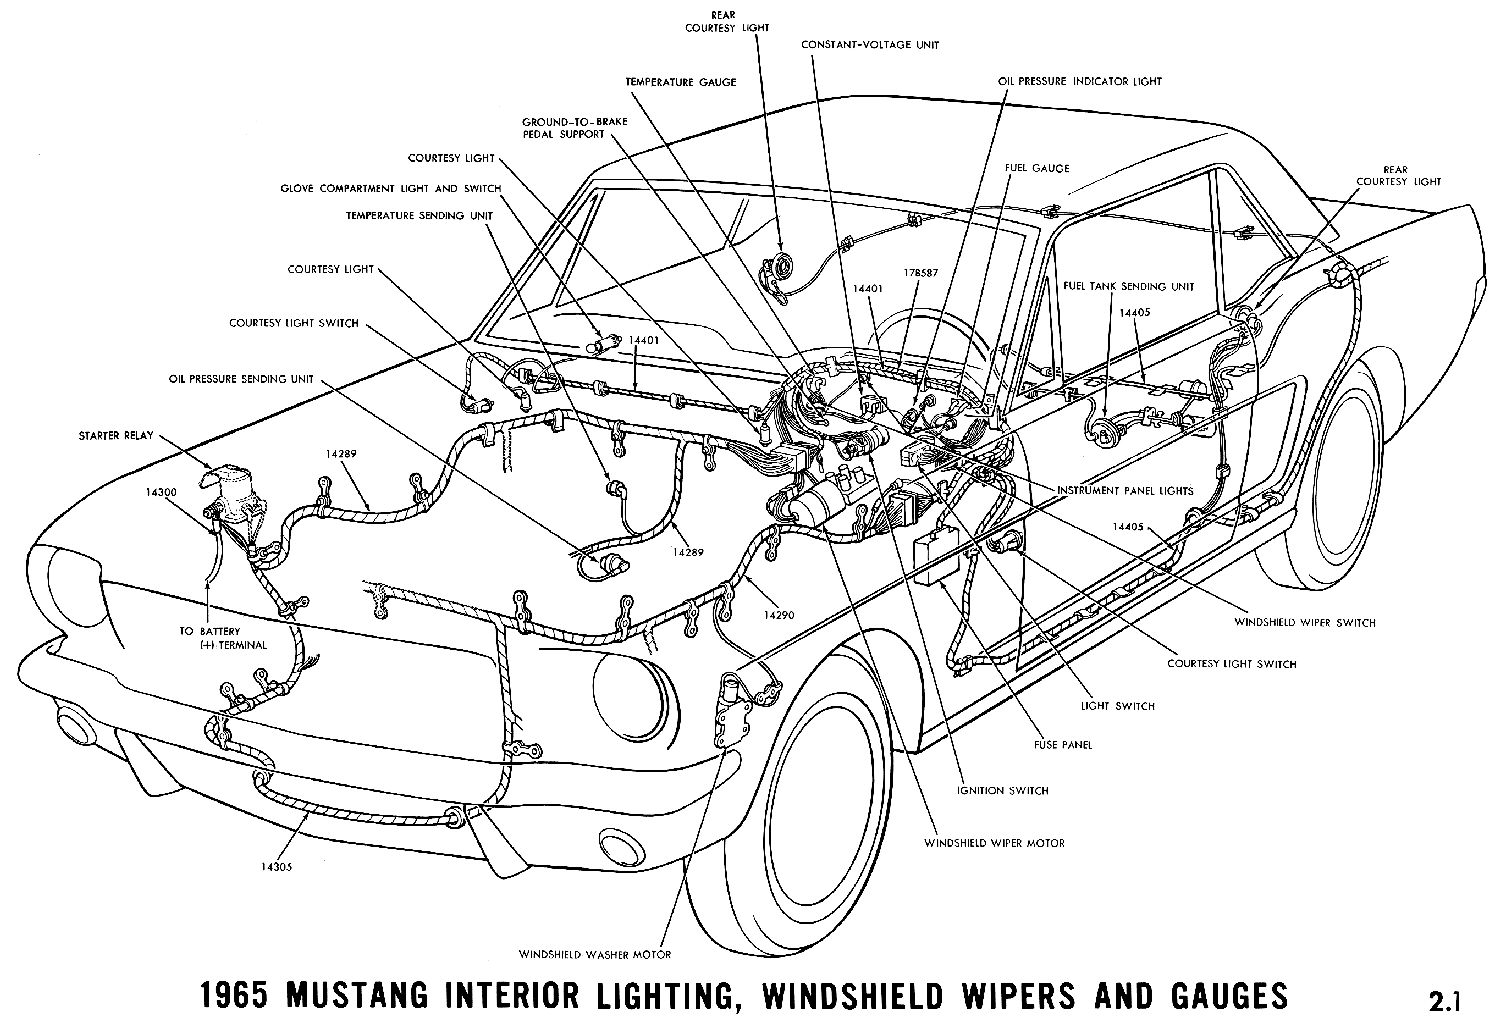 1965 Mustang Wiring Diagrams Average Joe Restoration 12 Volt Solenoid Diagram 1965f